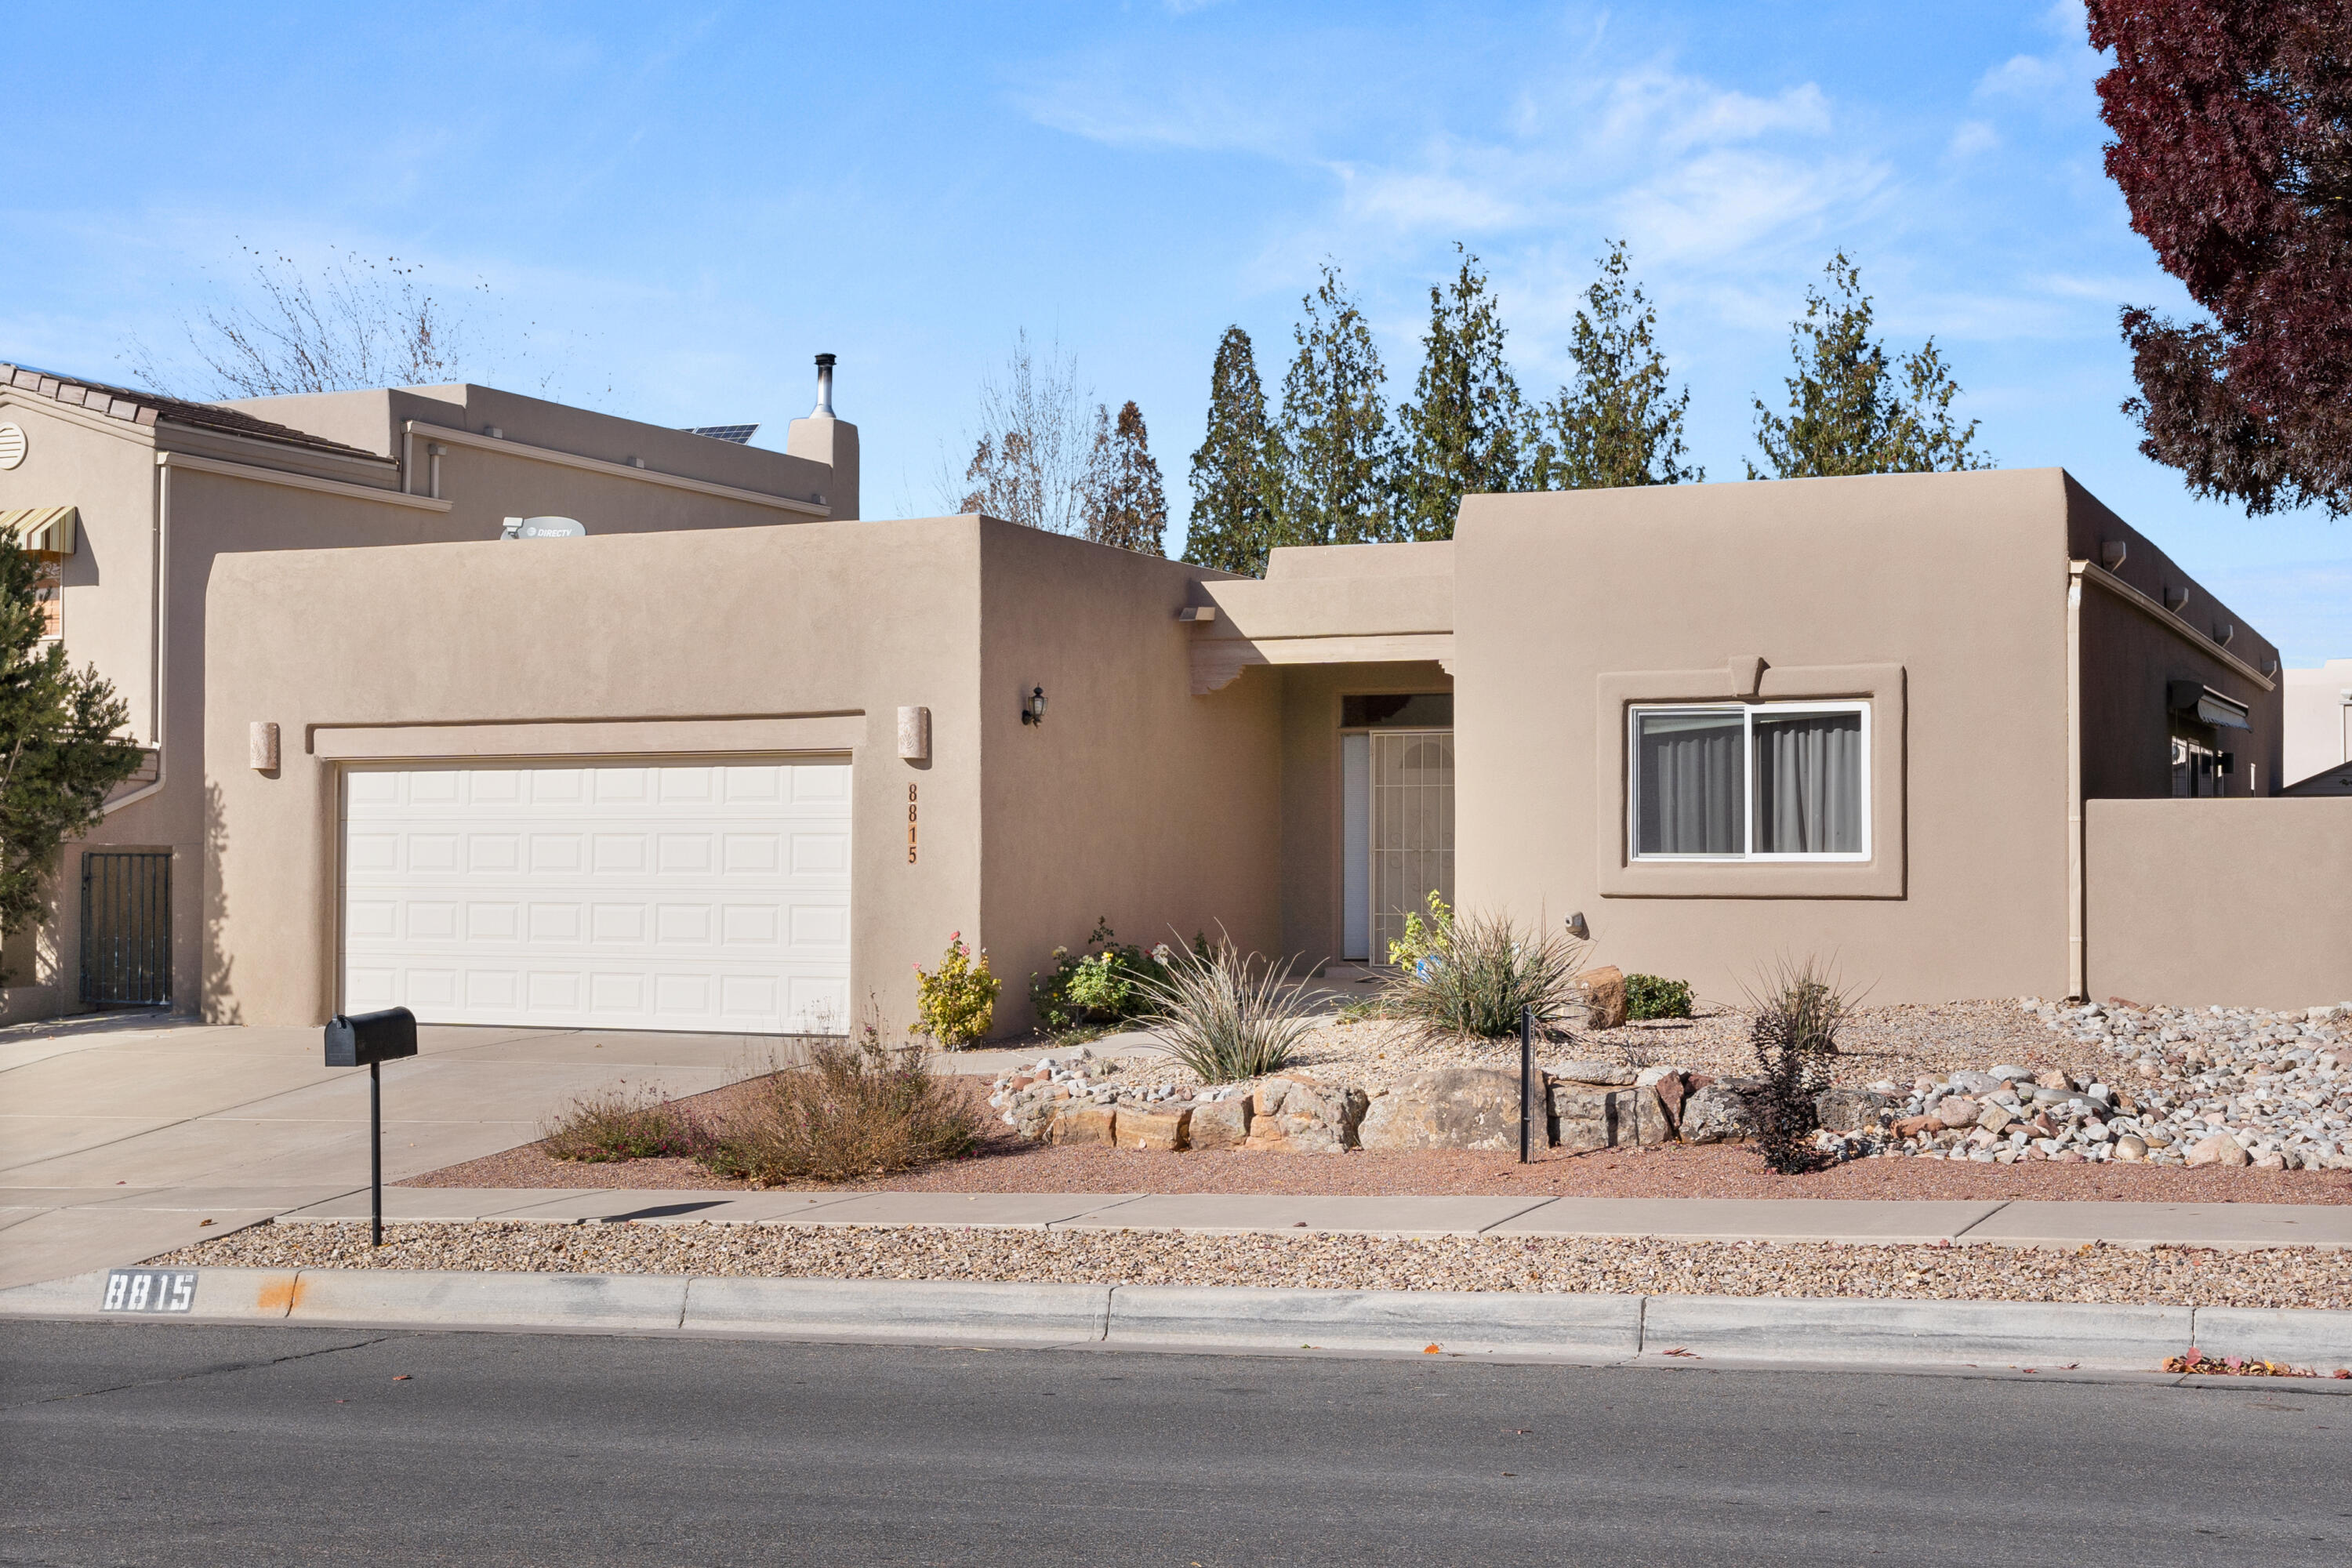 ** RARE FIND ALERT!!.  Wide open main living area.  The living room, dining room, and large kitchen flow as one enormous  main living area.  Main living area leaves plenty of elbow for the entire group.  Mini-master is perfect for guests. This one-story home has never been roughly lived in.  Newer A/C unit.  Newer Stucco, 2020 TPO roof.  All the bedrooms are very separated. out.  Master with its own En-Suite plus a mini master in the front of the home.     Kitchen is nice and spacious. 188 square foot office between Master and mini-master was built after construction.  Great big craftsmanship area in oversized garage.  This home is a rare find!